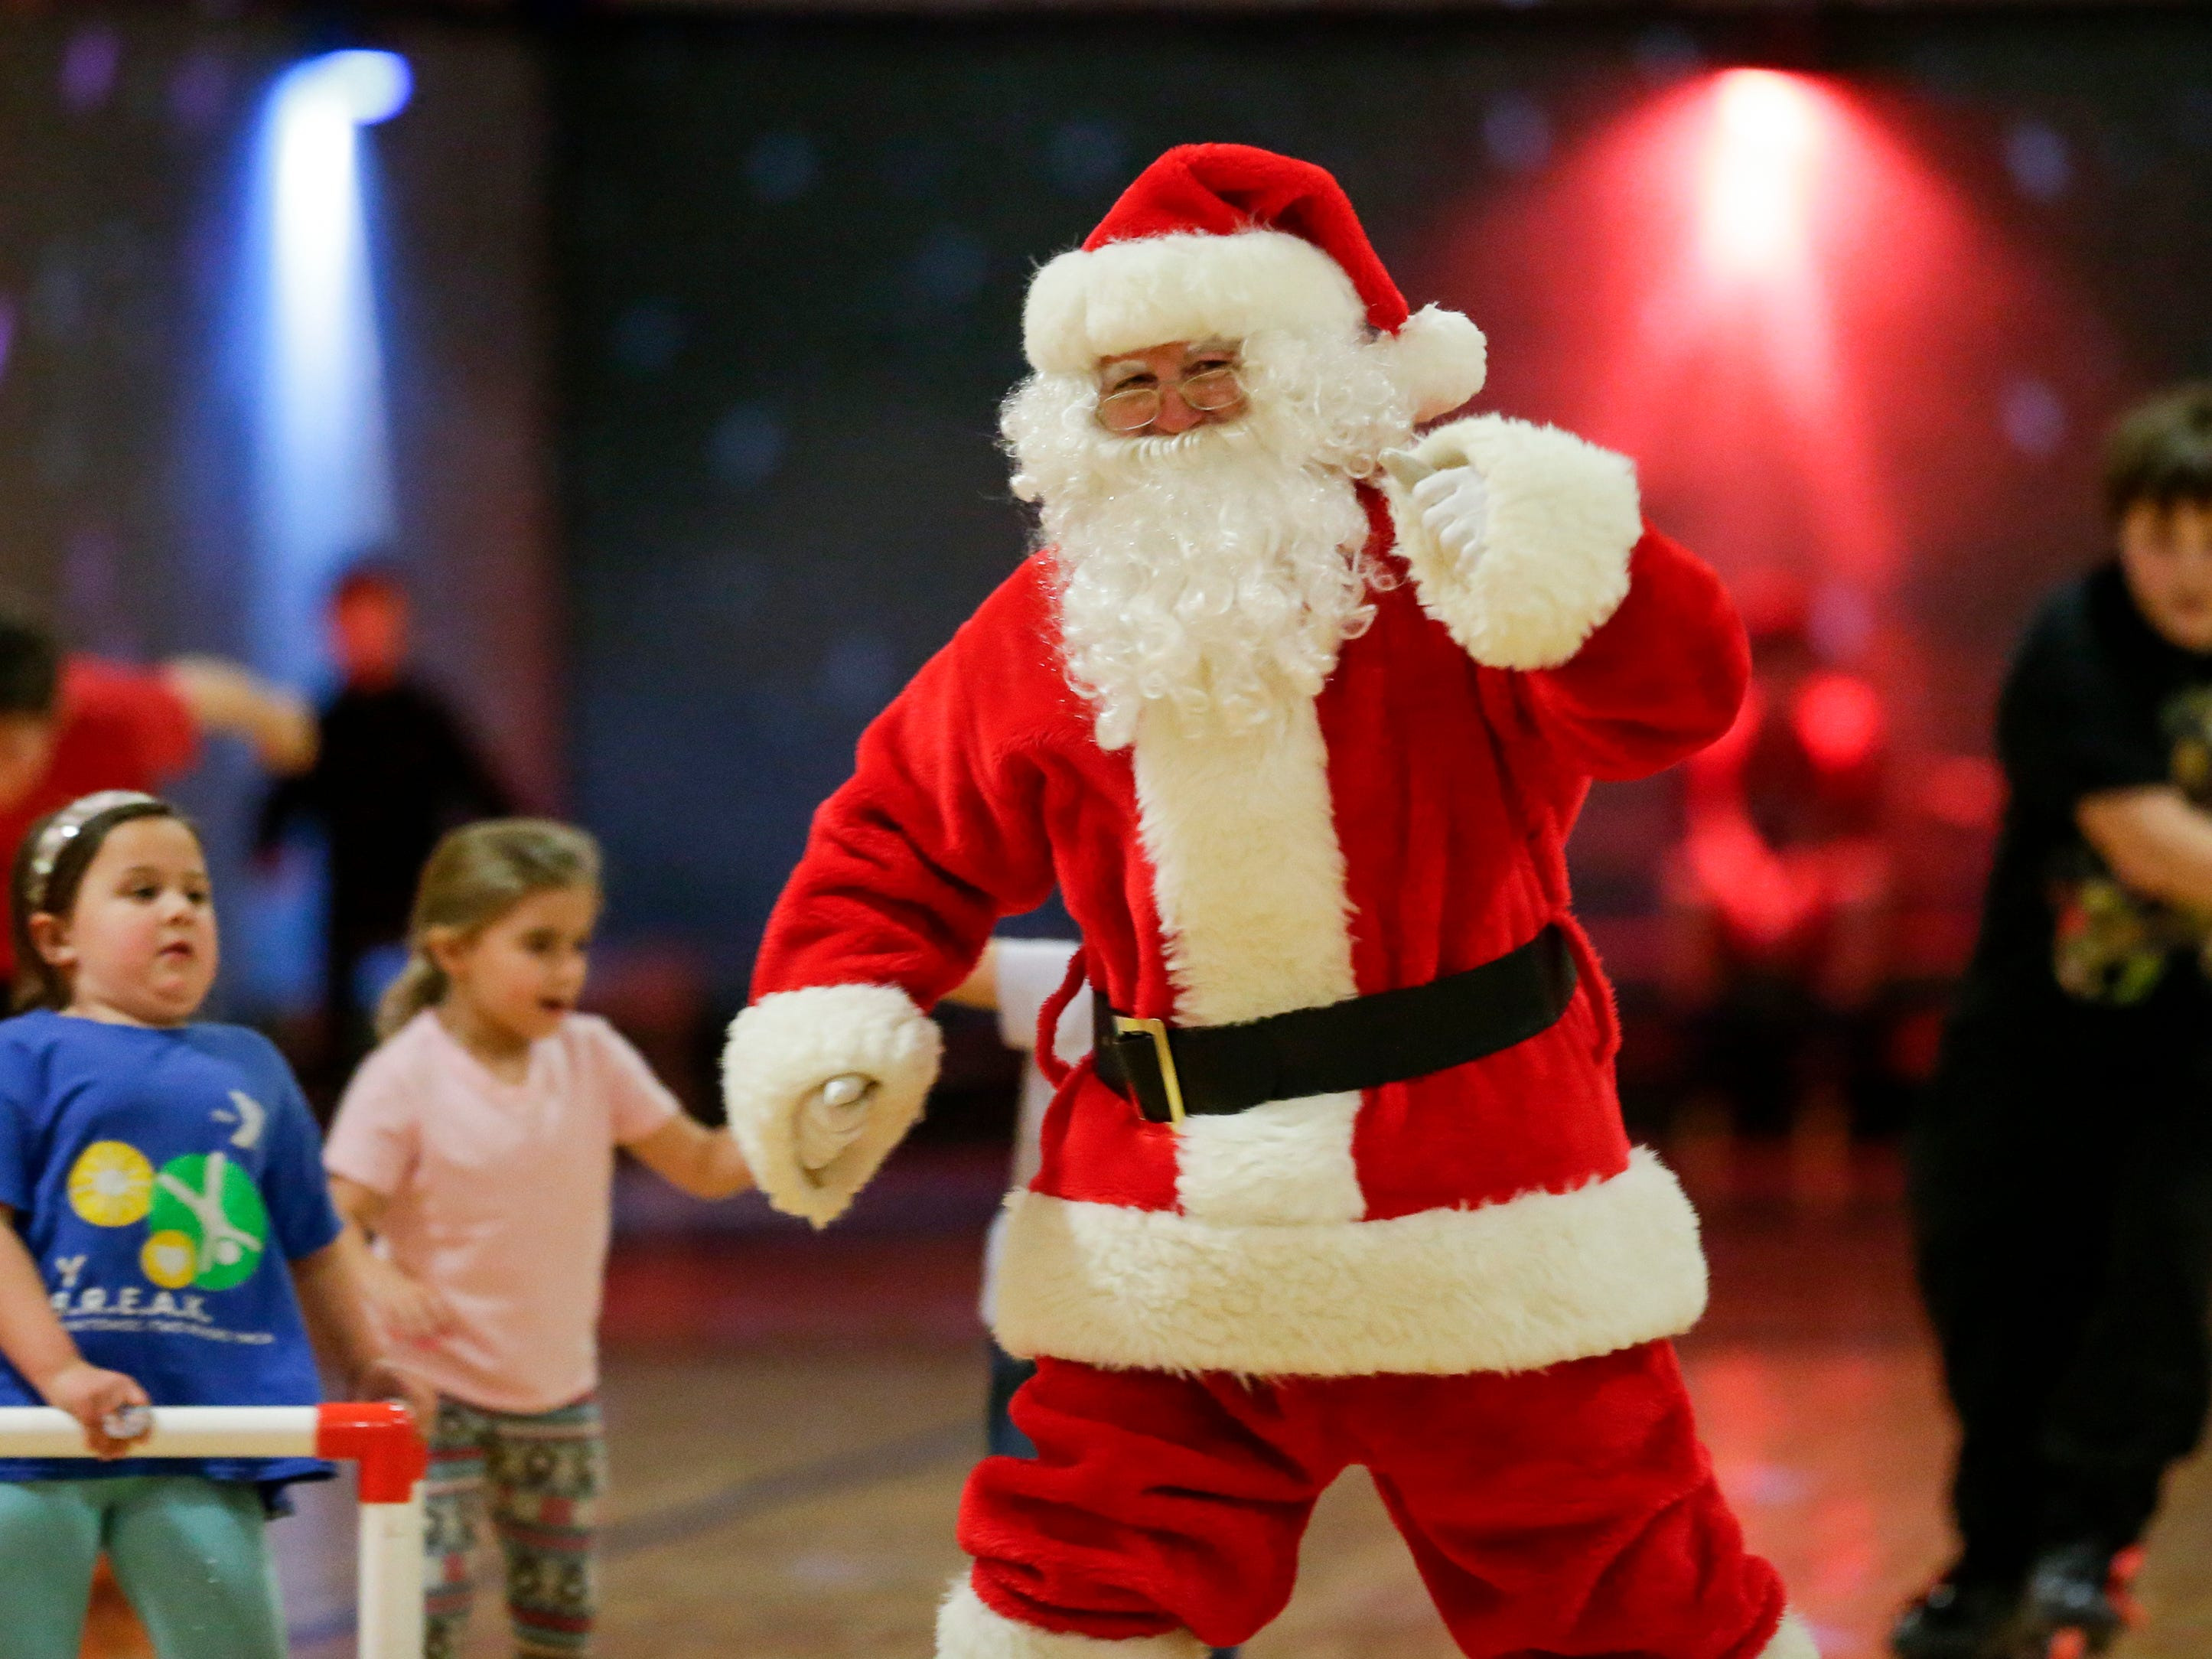 Santa dances during the 20th annual Santa Skate at Rollaire Skate Center Saturday, December 15, 2018, in Manitowoc, Wis. Joshua Clark/USA TODAY NETWORK-Wisconsin